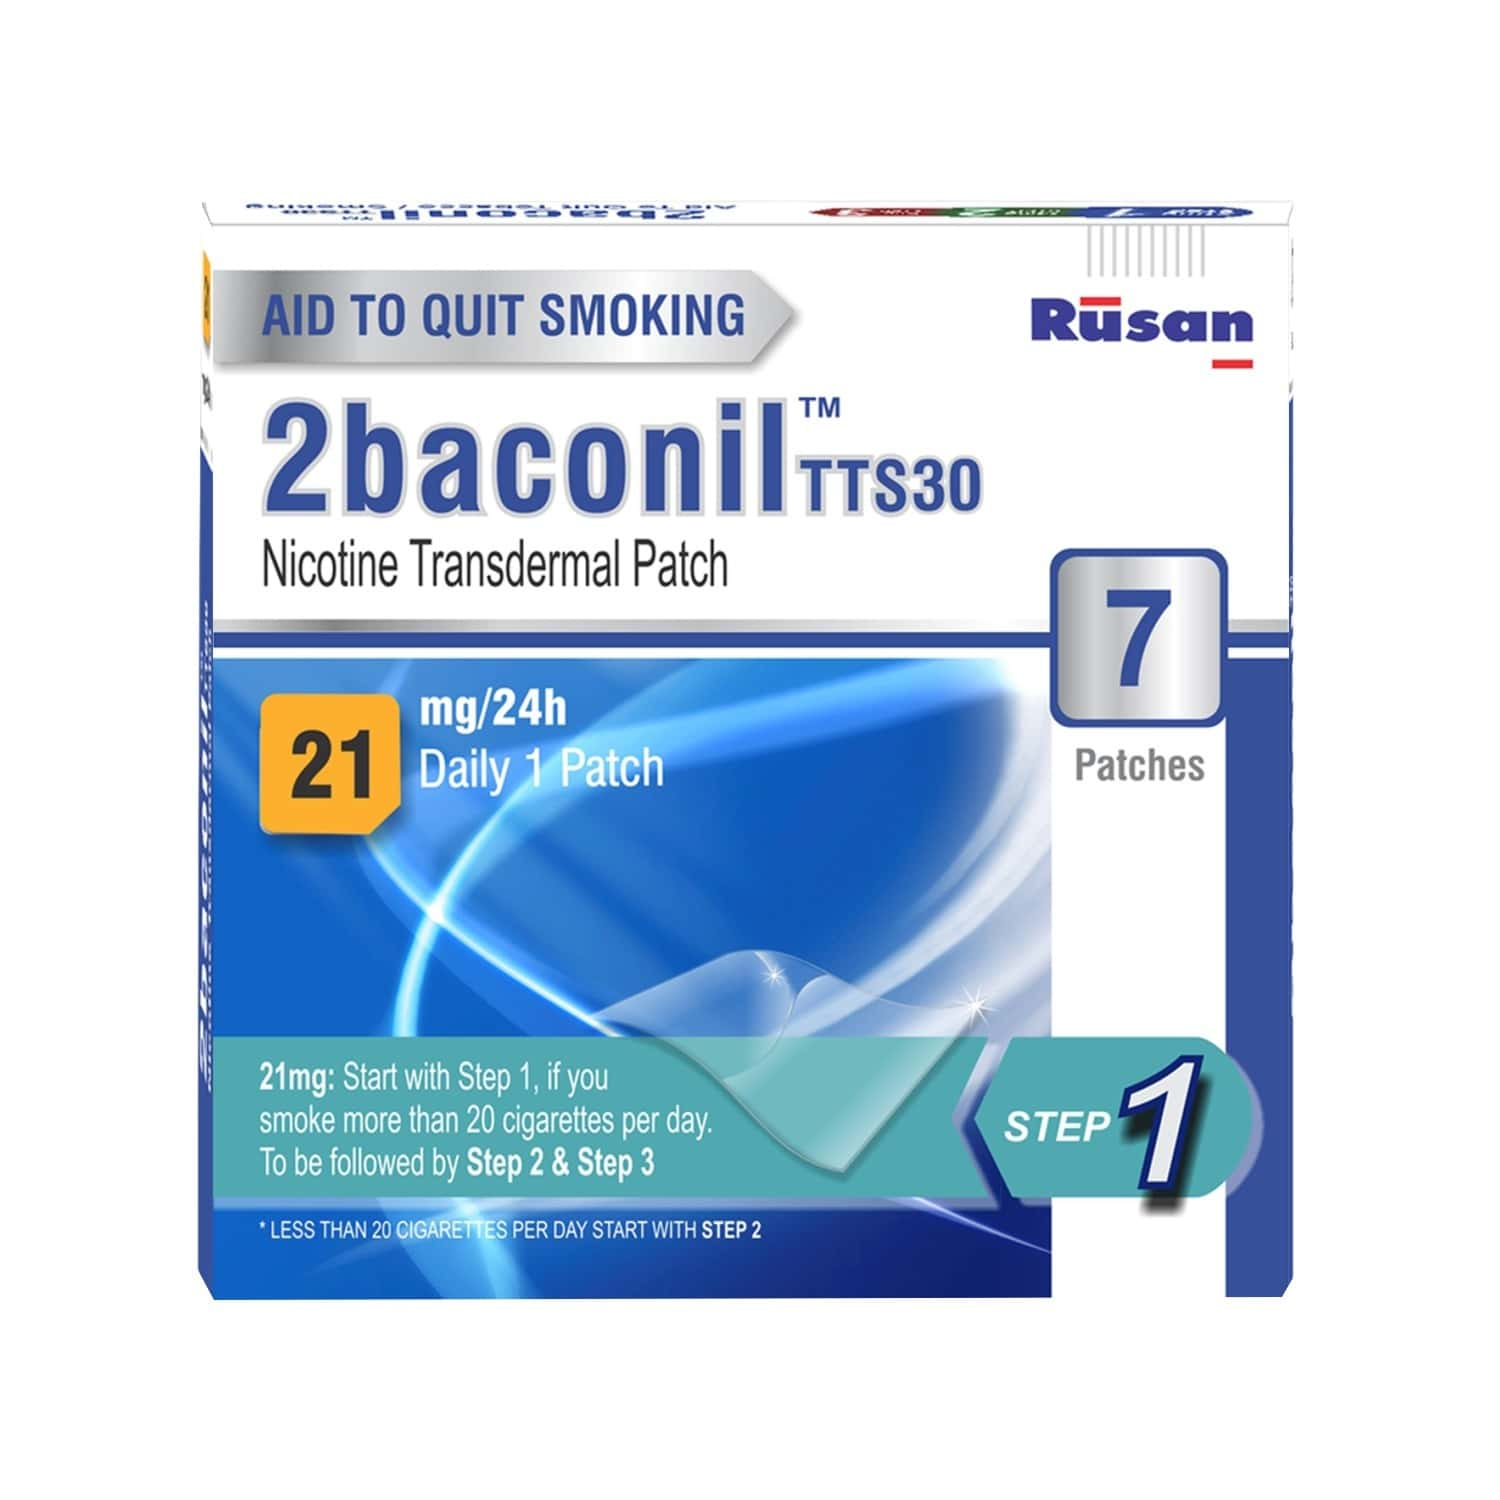 2baconil - 21mg Step 1 Nicotine Patch Packet Of 7 's